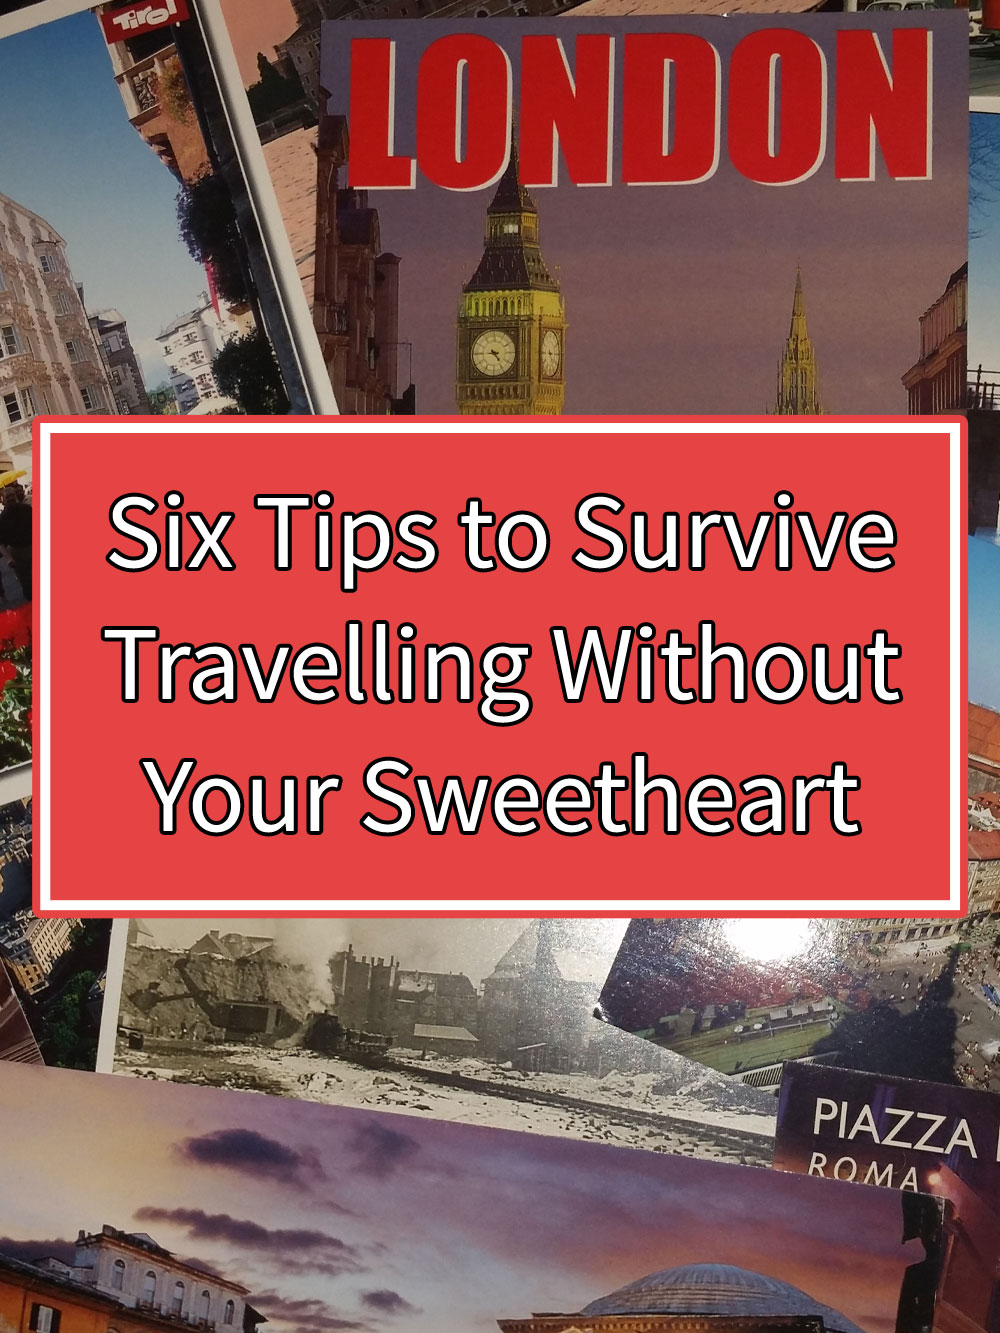 Six Tips to Survive Travelling Without Your Sweetheart